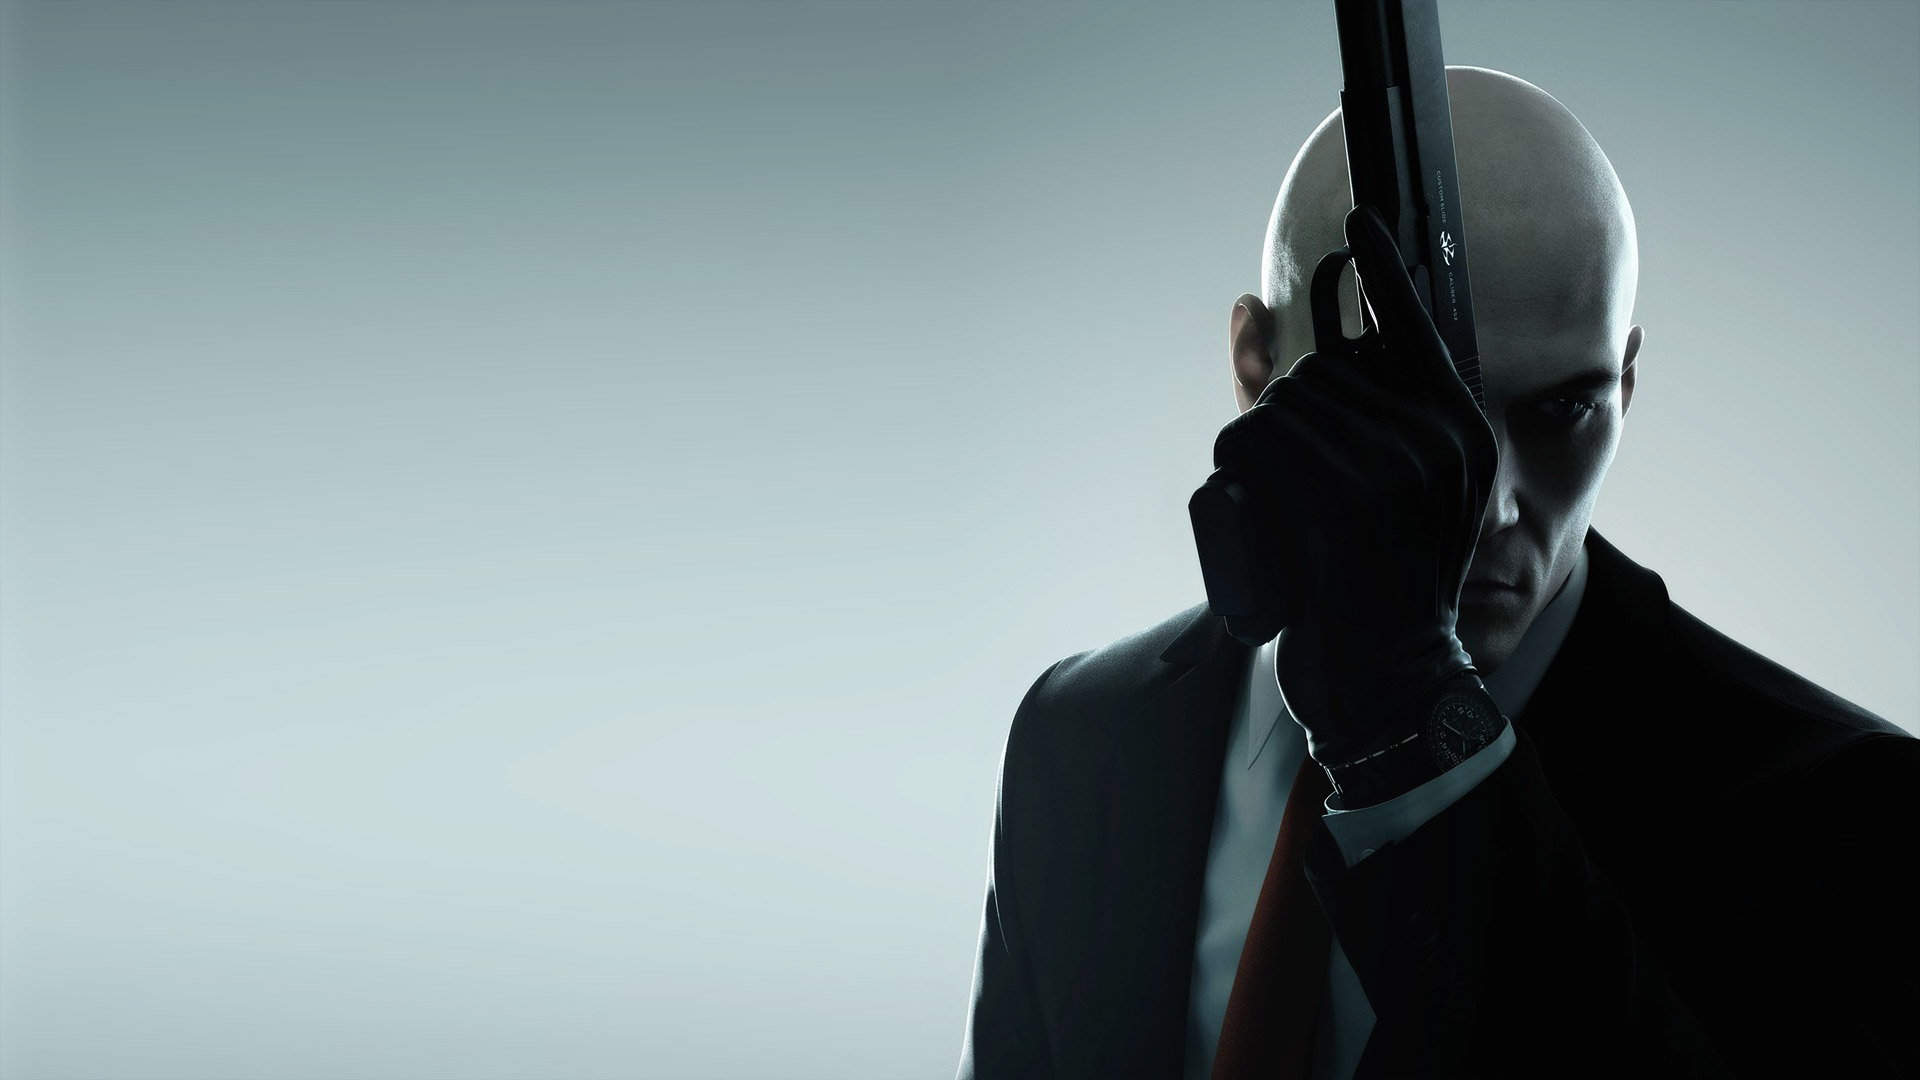 Hitman Wallpaper in 1920x1080